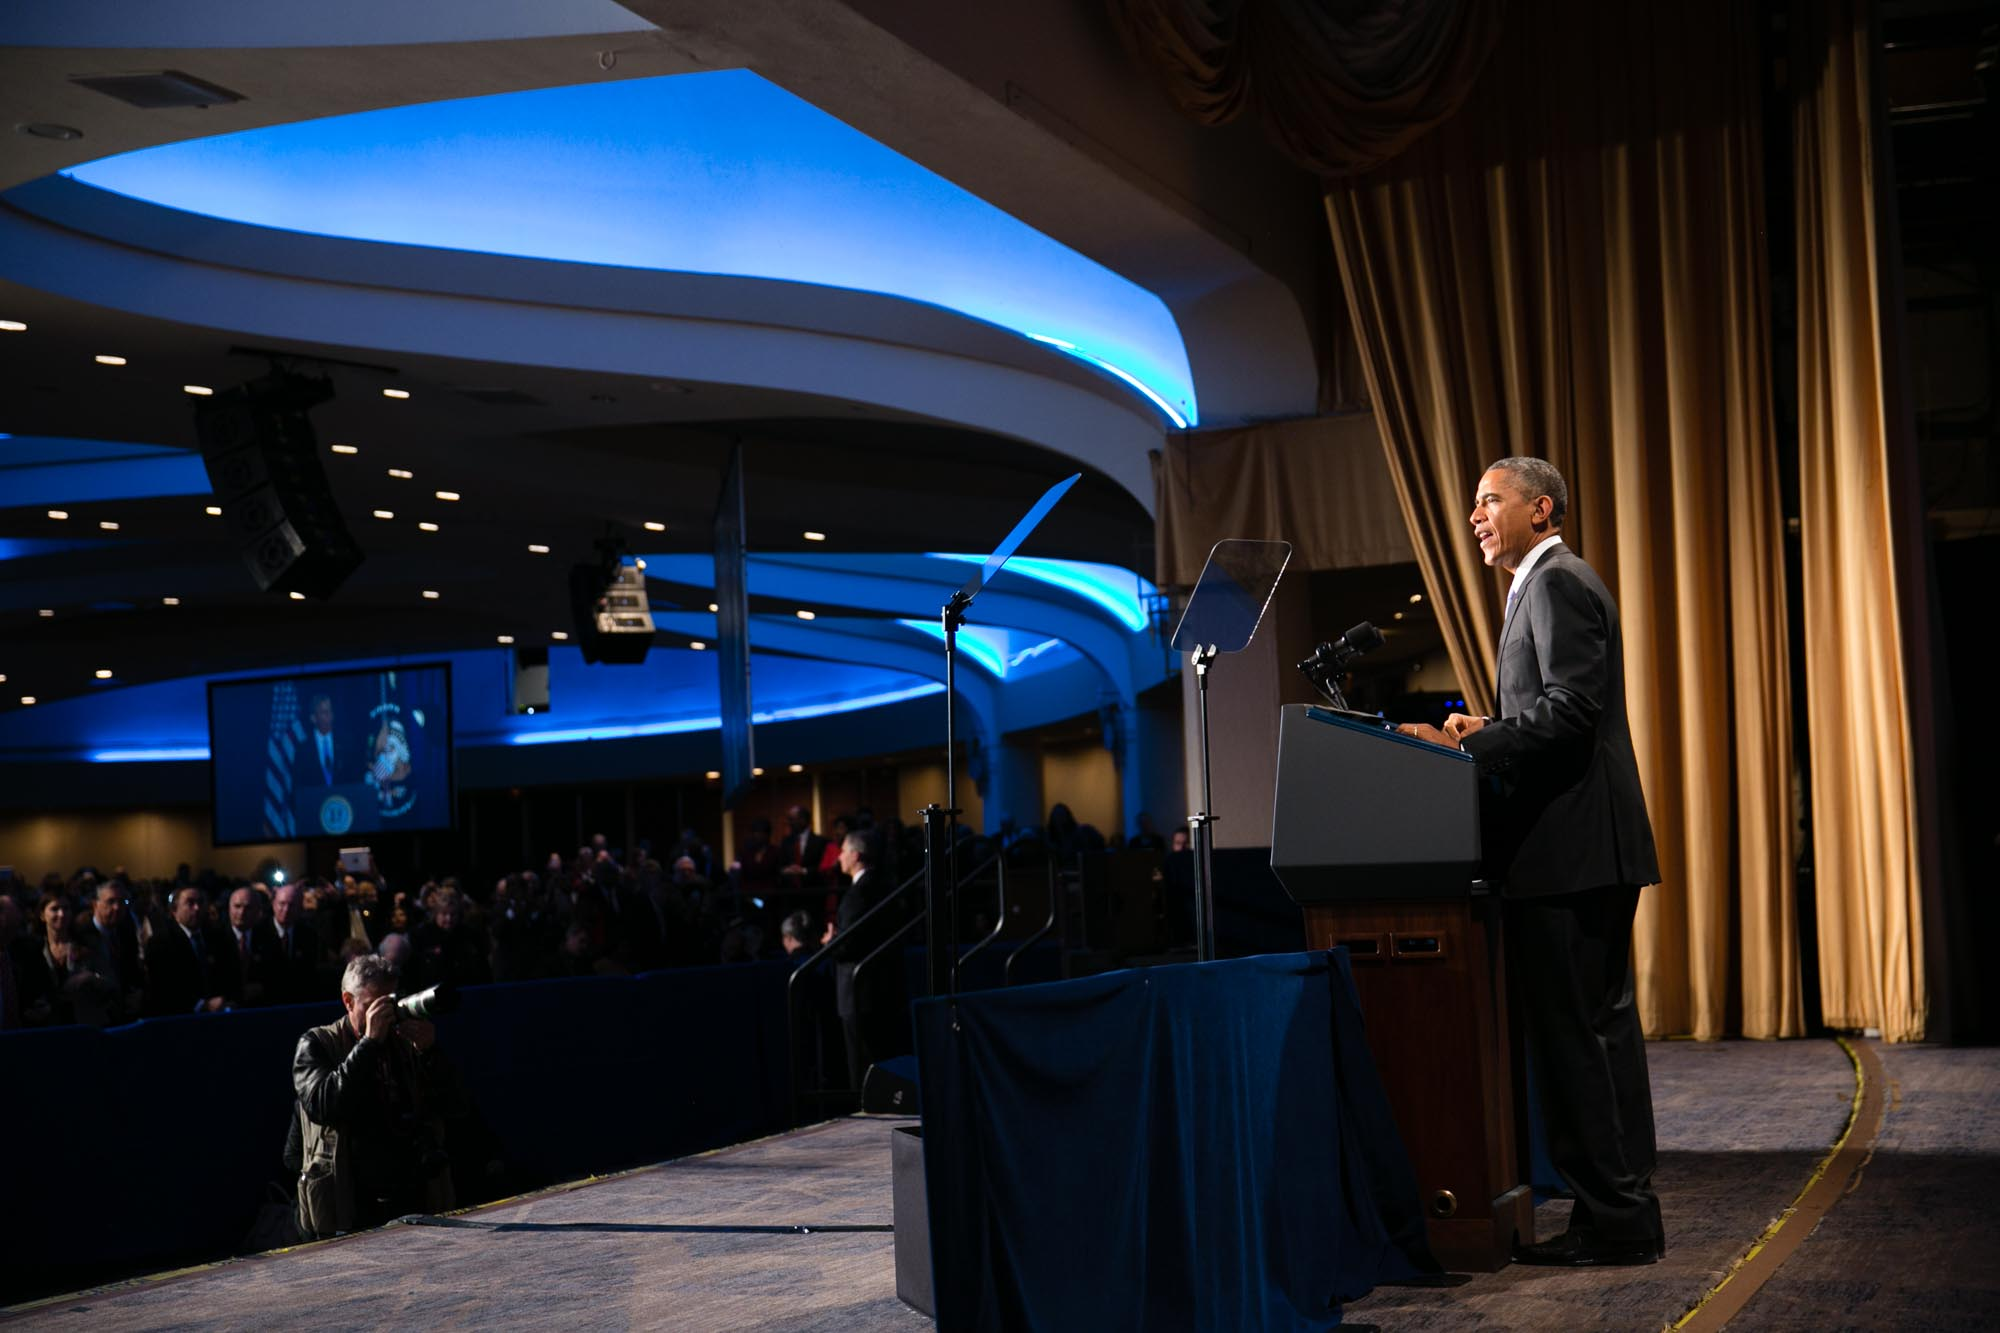 President Barack Obama delivers remarks during an event for the Senior Executive Service at the Washington Hilton in Washington, D.C., Dec. 9, 2014.